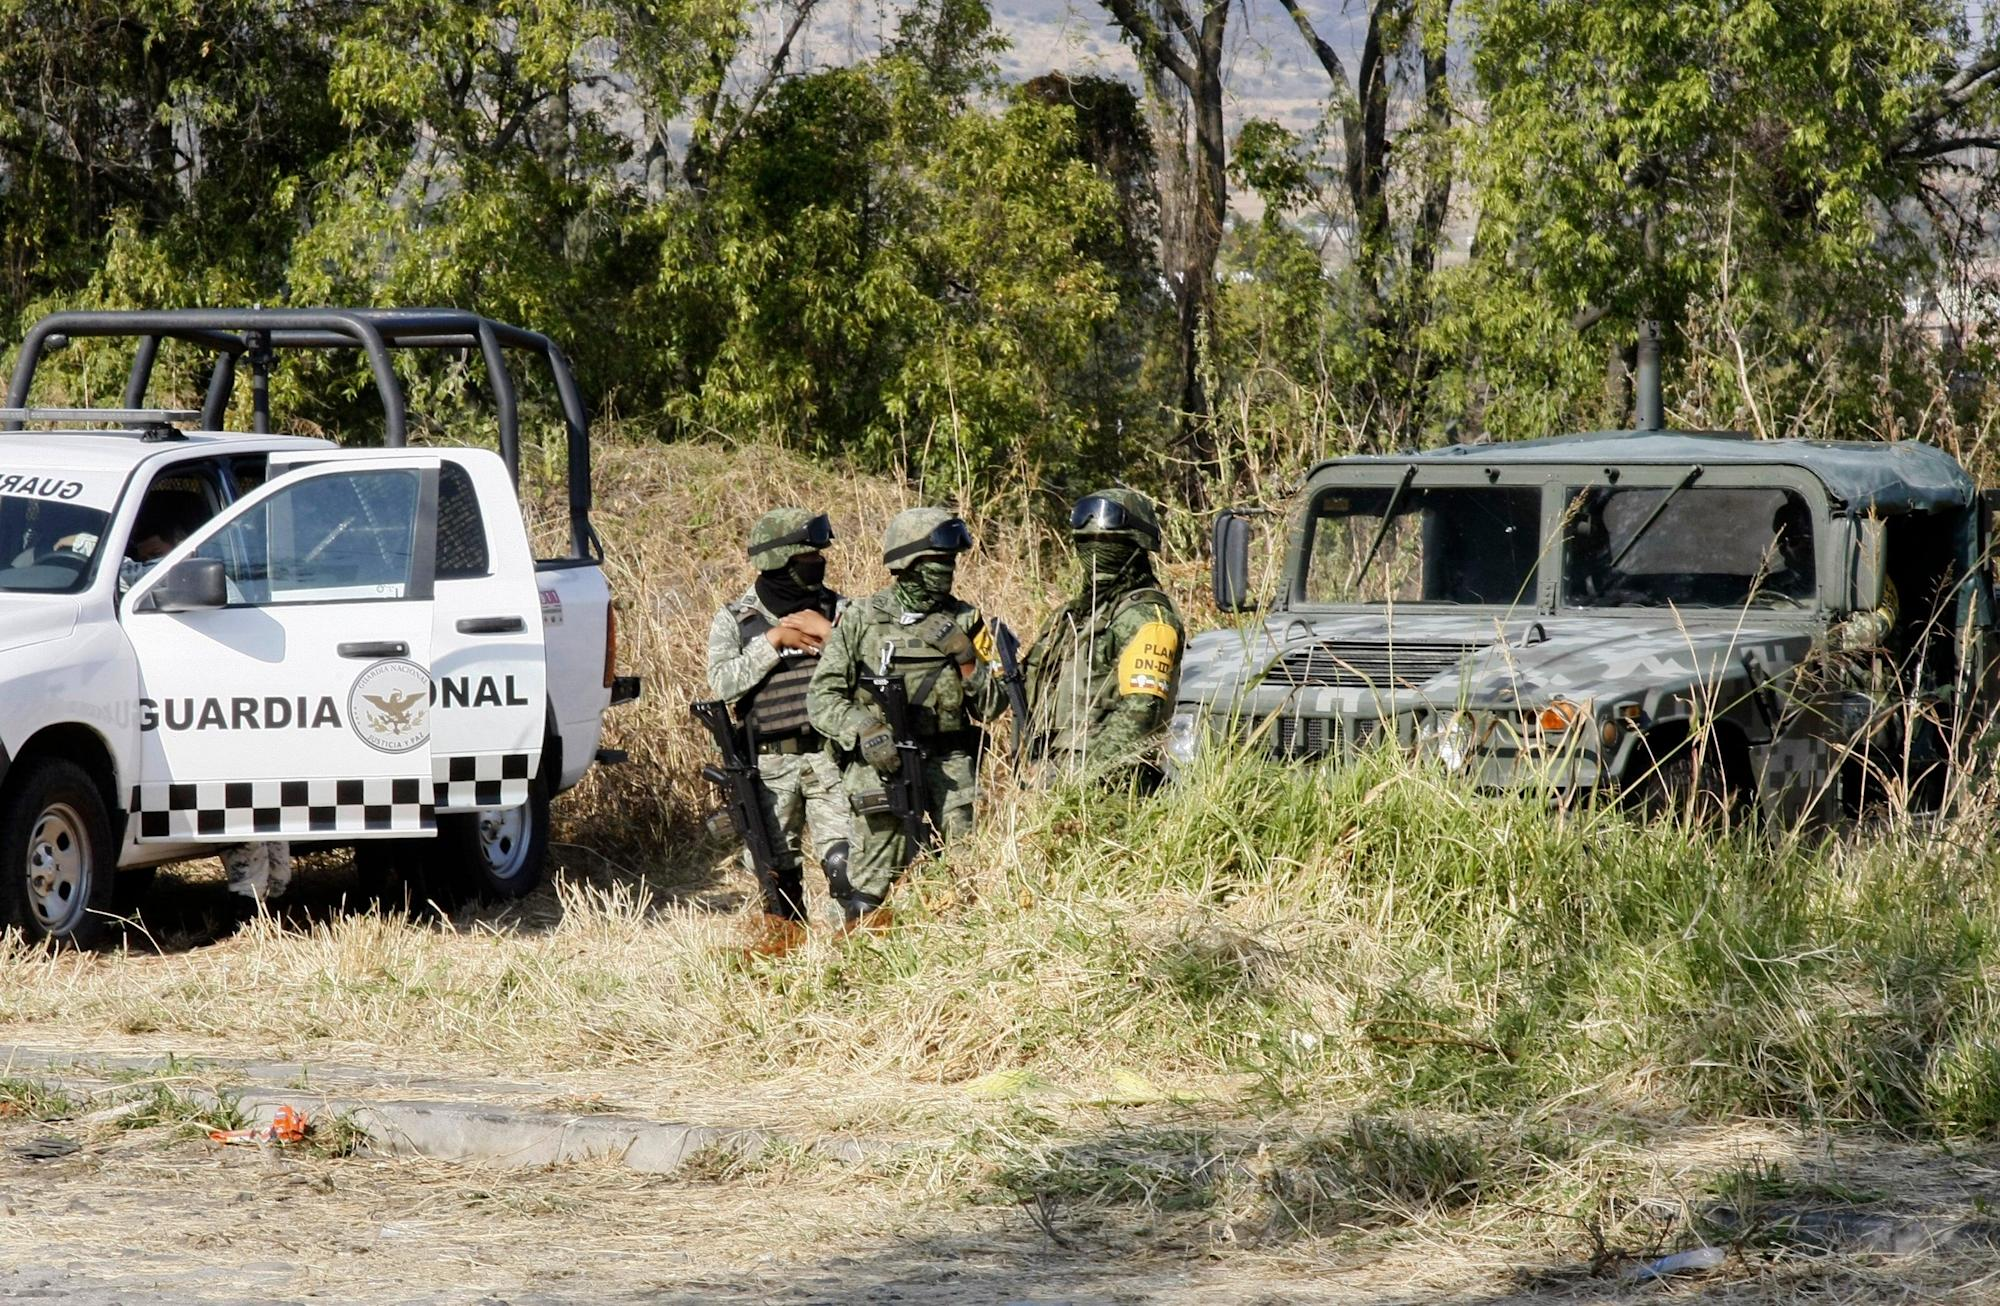 At least 60 bodies found in secret mass grave 'in middle of town' in Mexico: 'People must have known'